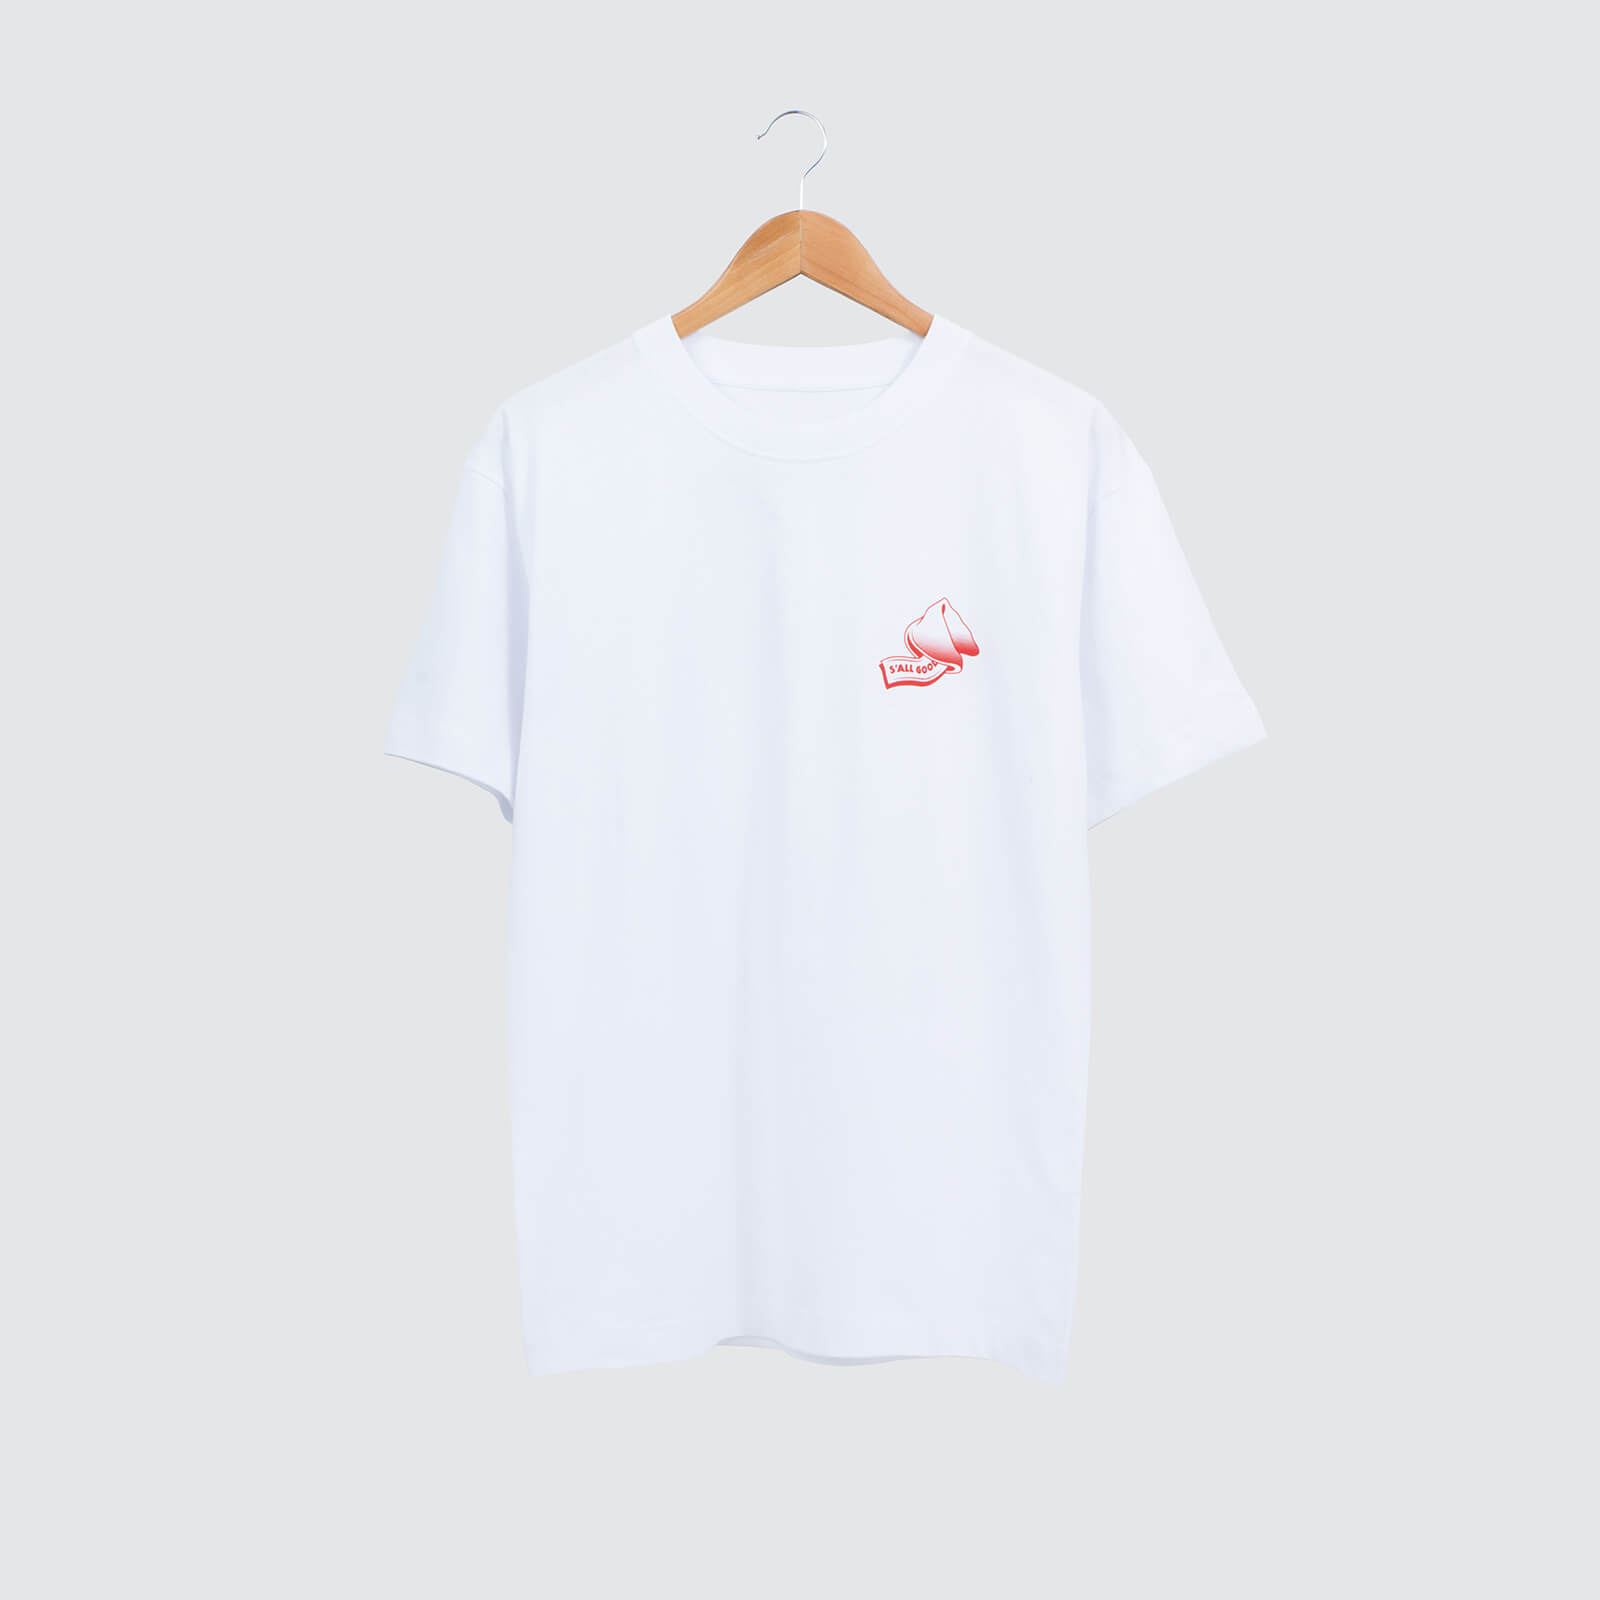 S'ALL GOOD Tee (White)